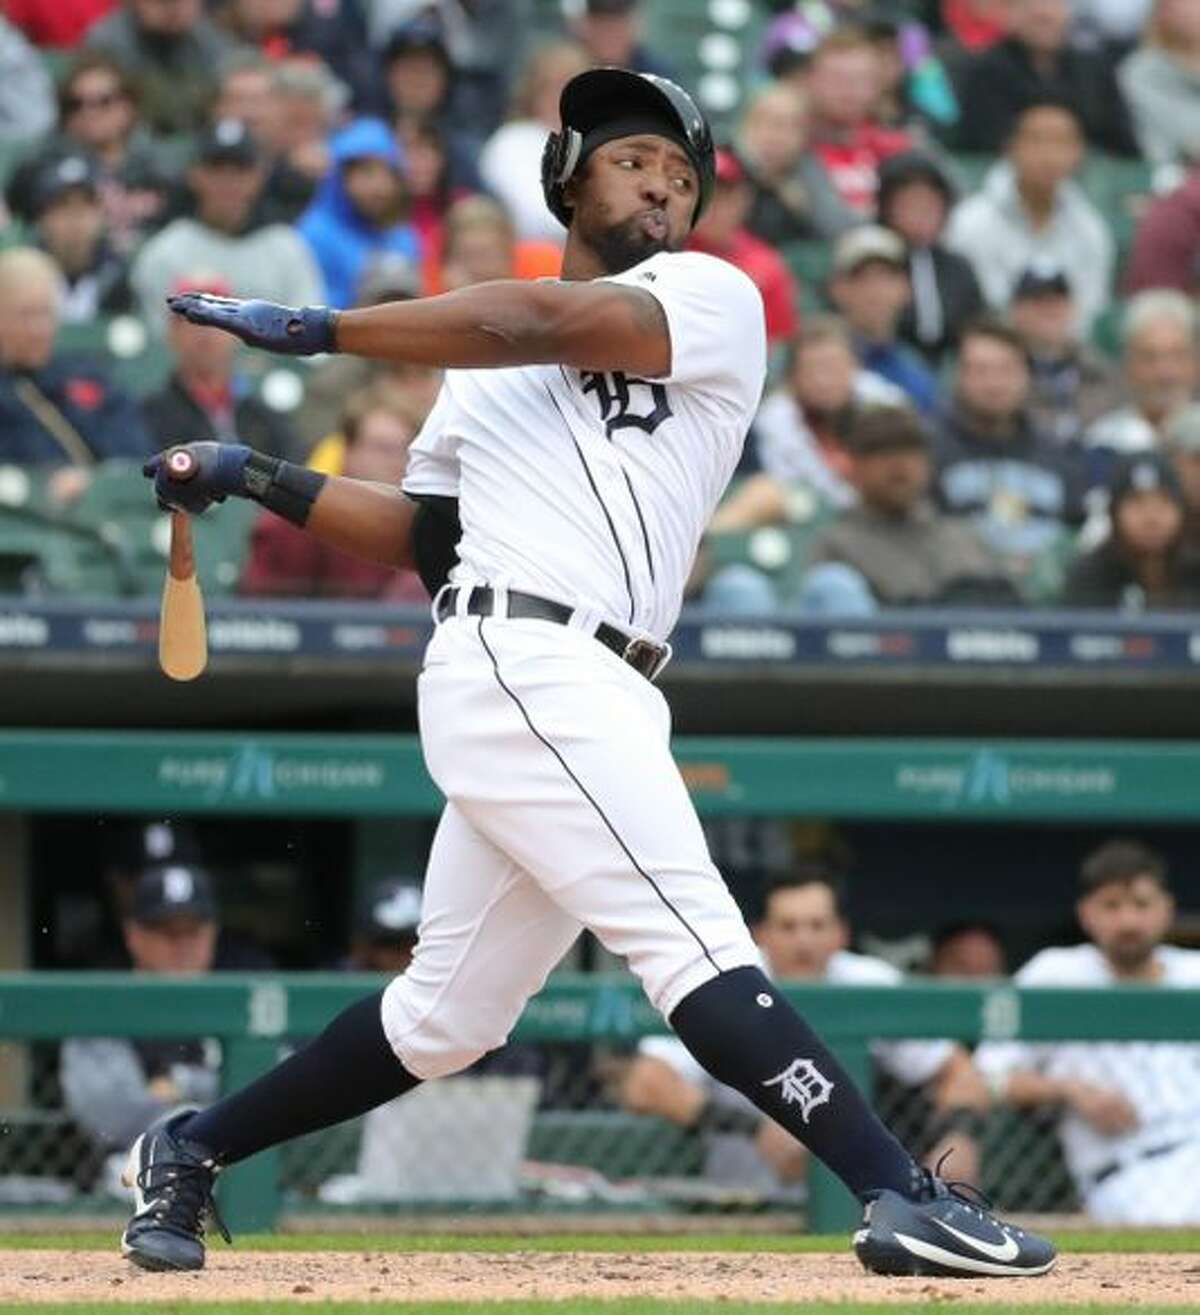 Detroit Tigers' Christin Stewart bats against the St. Louis Cardinals during the ninth inning Sunday, Sept. 9, 2018, at Comerica Park in Detroit. (Photo: Kirthmon F. Dozier, Detroit Free Press)